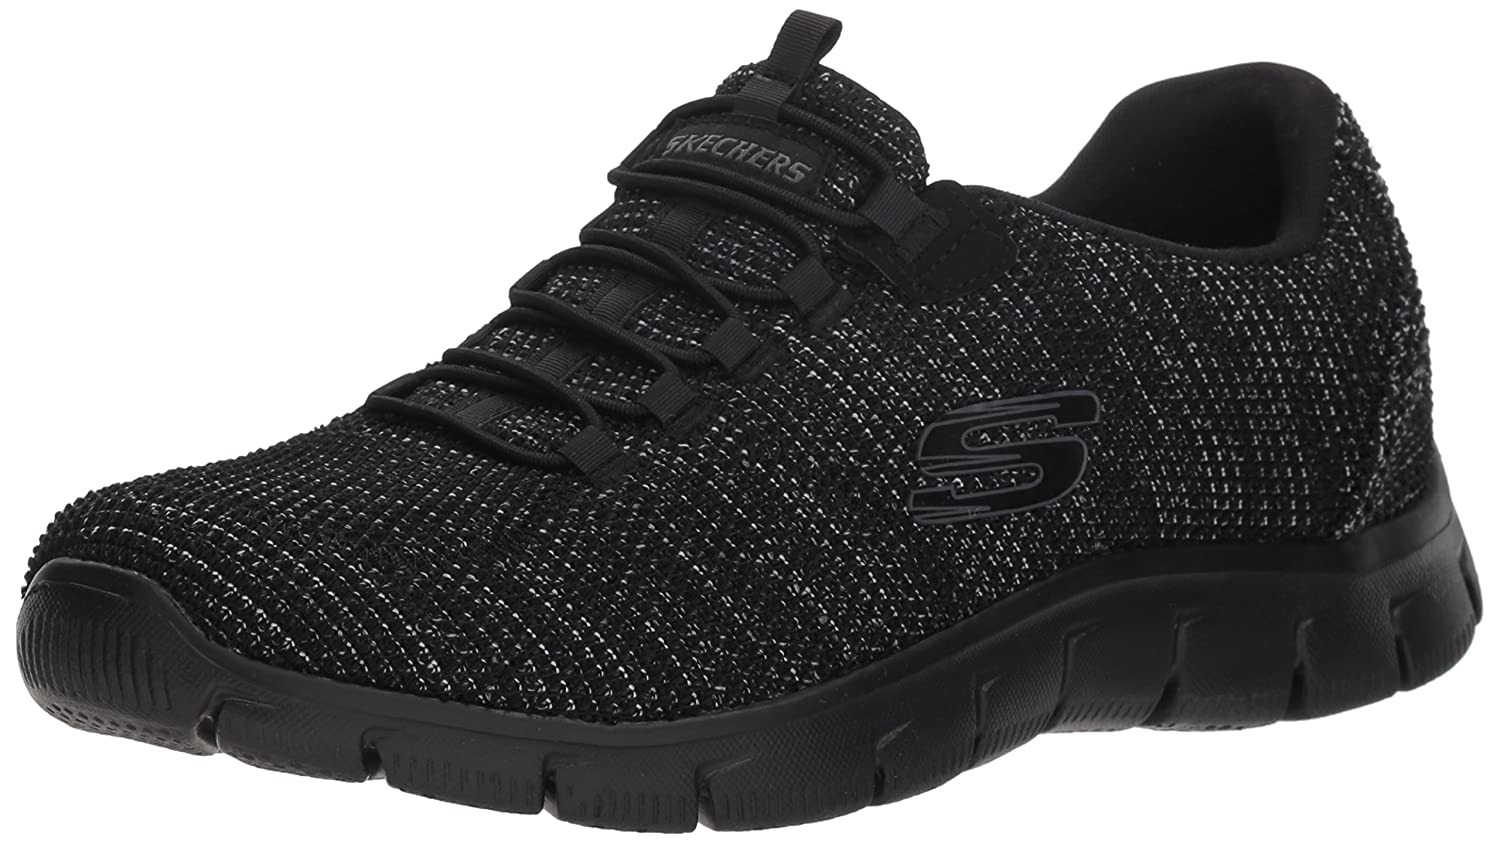 TALLA 40 EU. Skechers Empire-Dream World, Zapatillas para Mujer